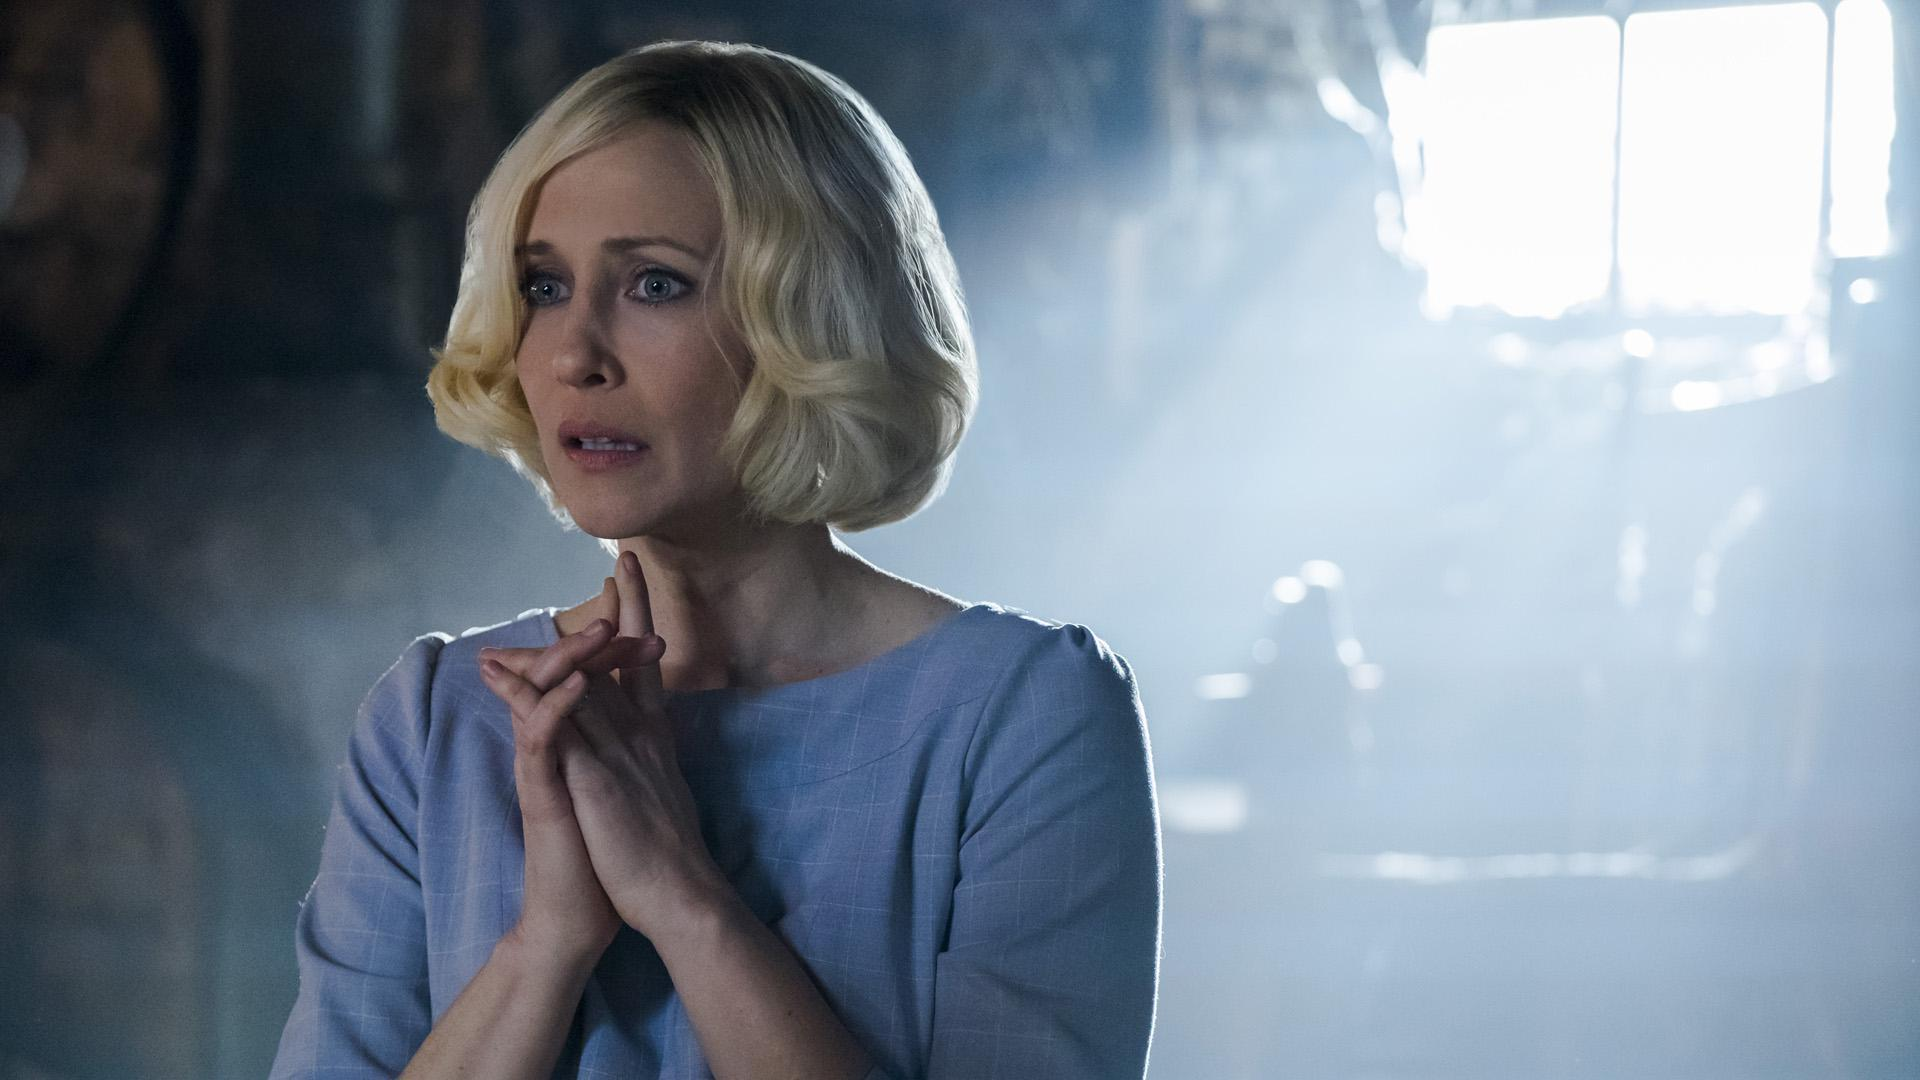 Bates Motel: There's No Place Like Home